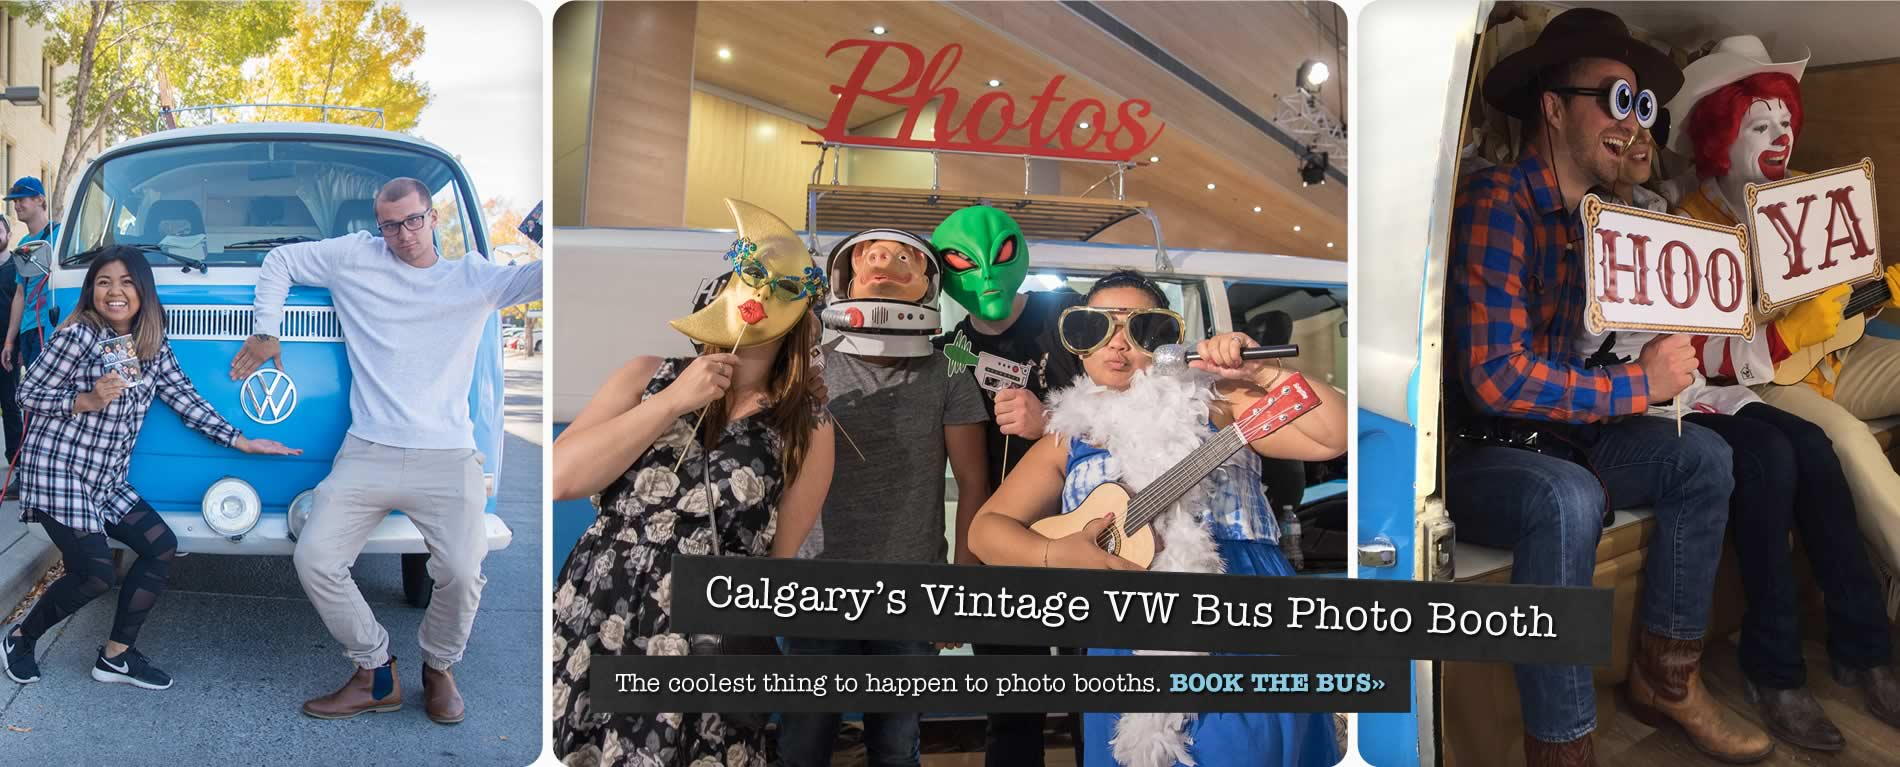 Calgary's Vintage VW Bus Photo Booth